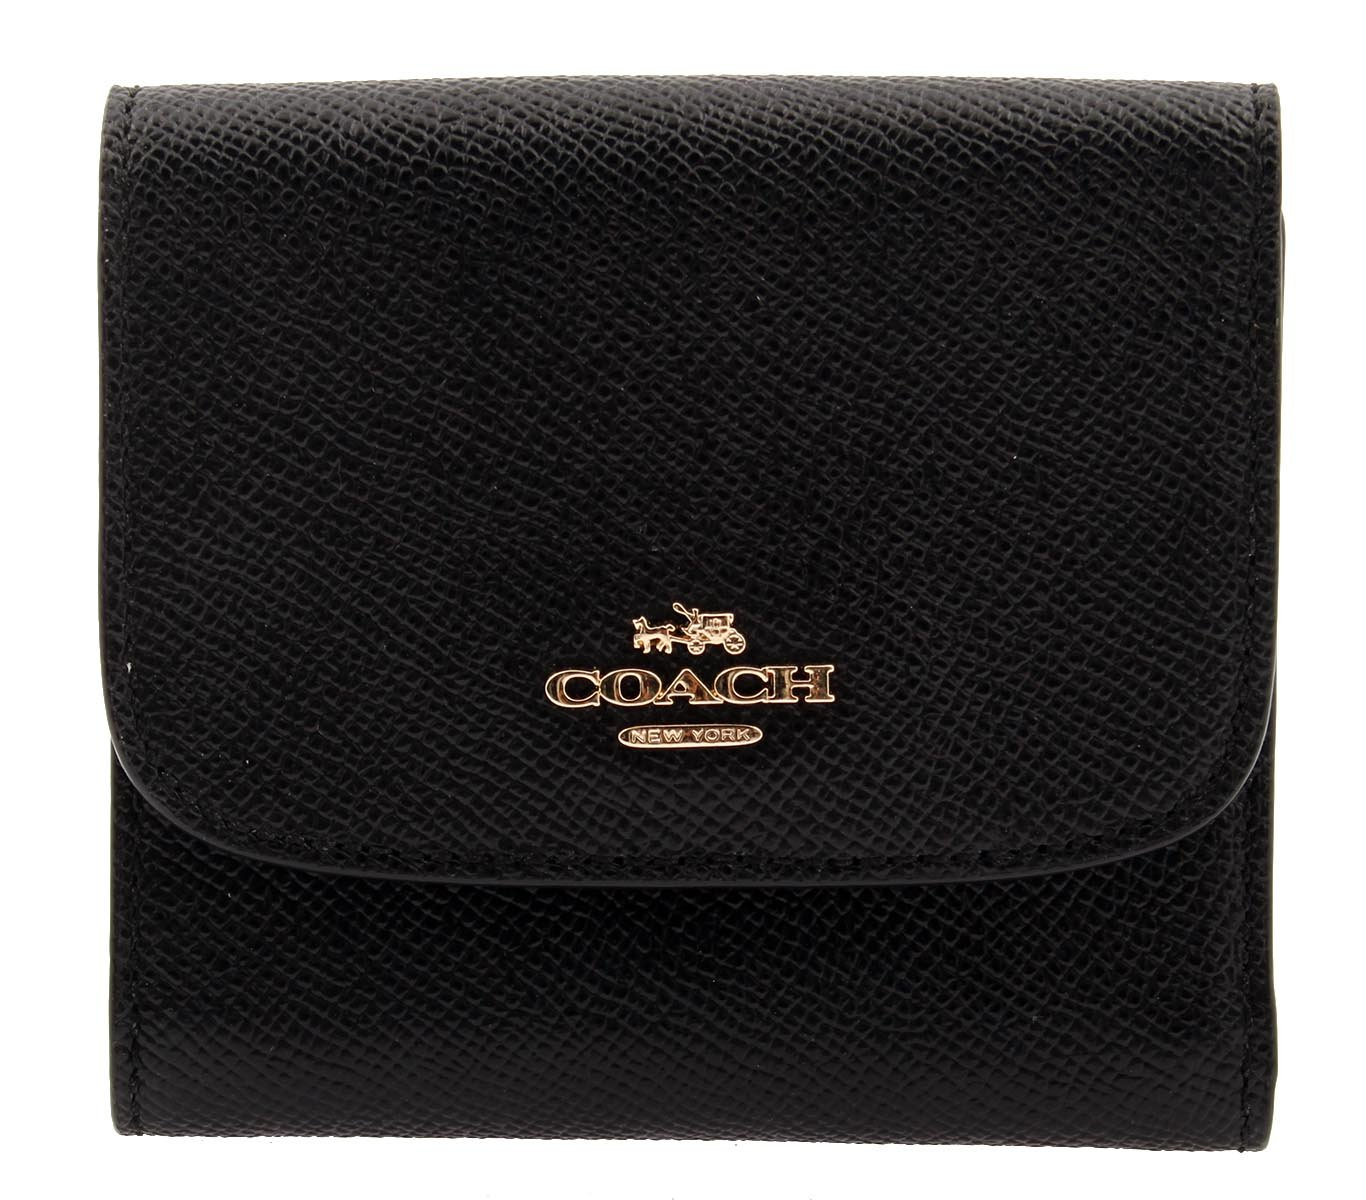 Coach Woman's Crossgrain Leather Small Wallet (Black)